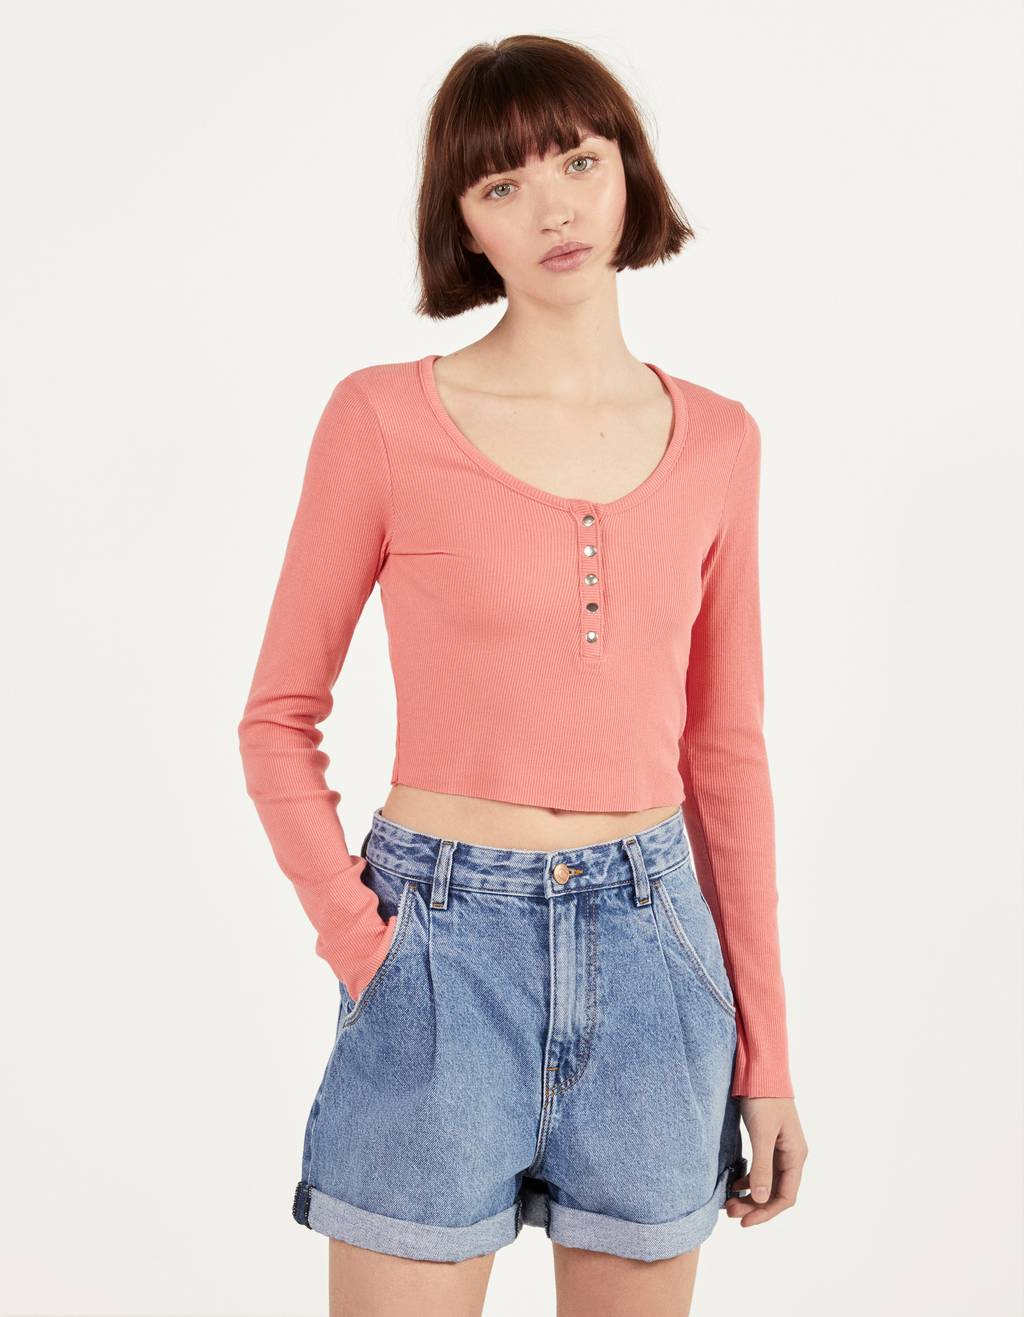 Cropped T-shirt with buttons